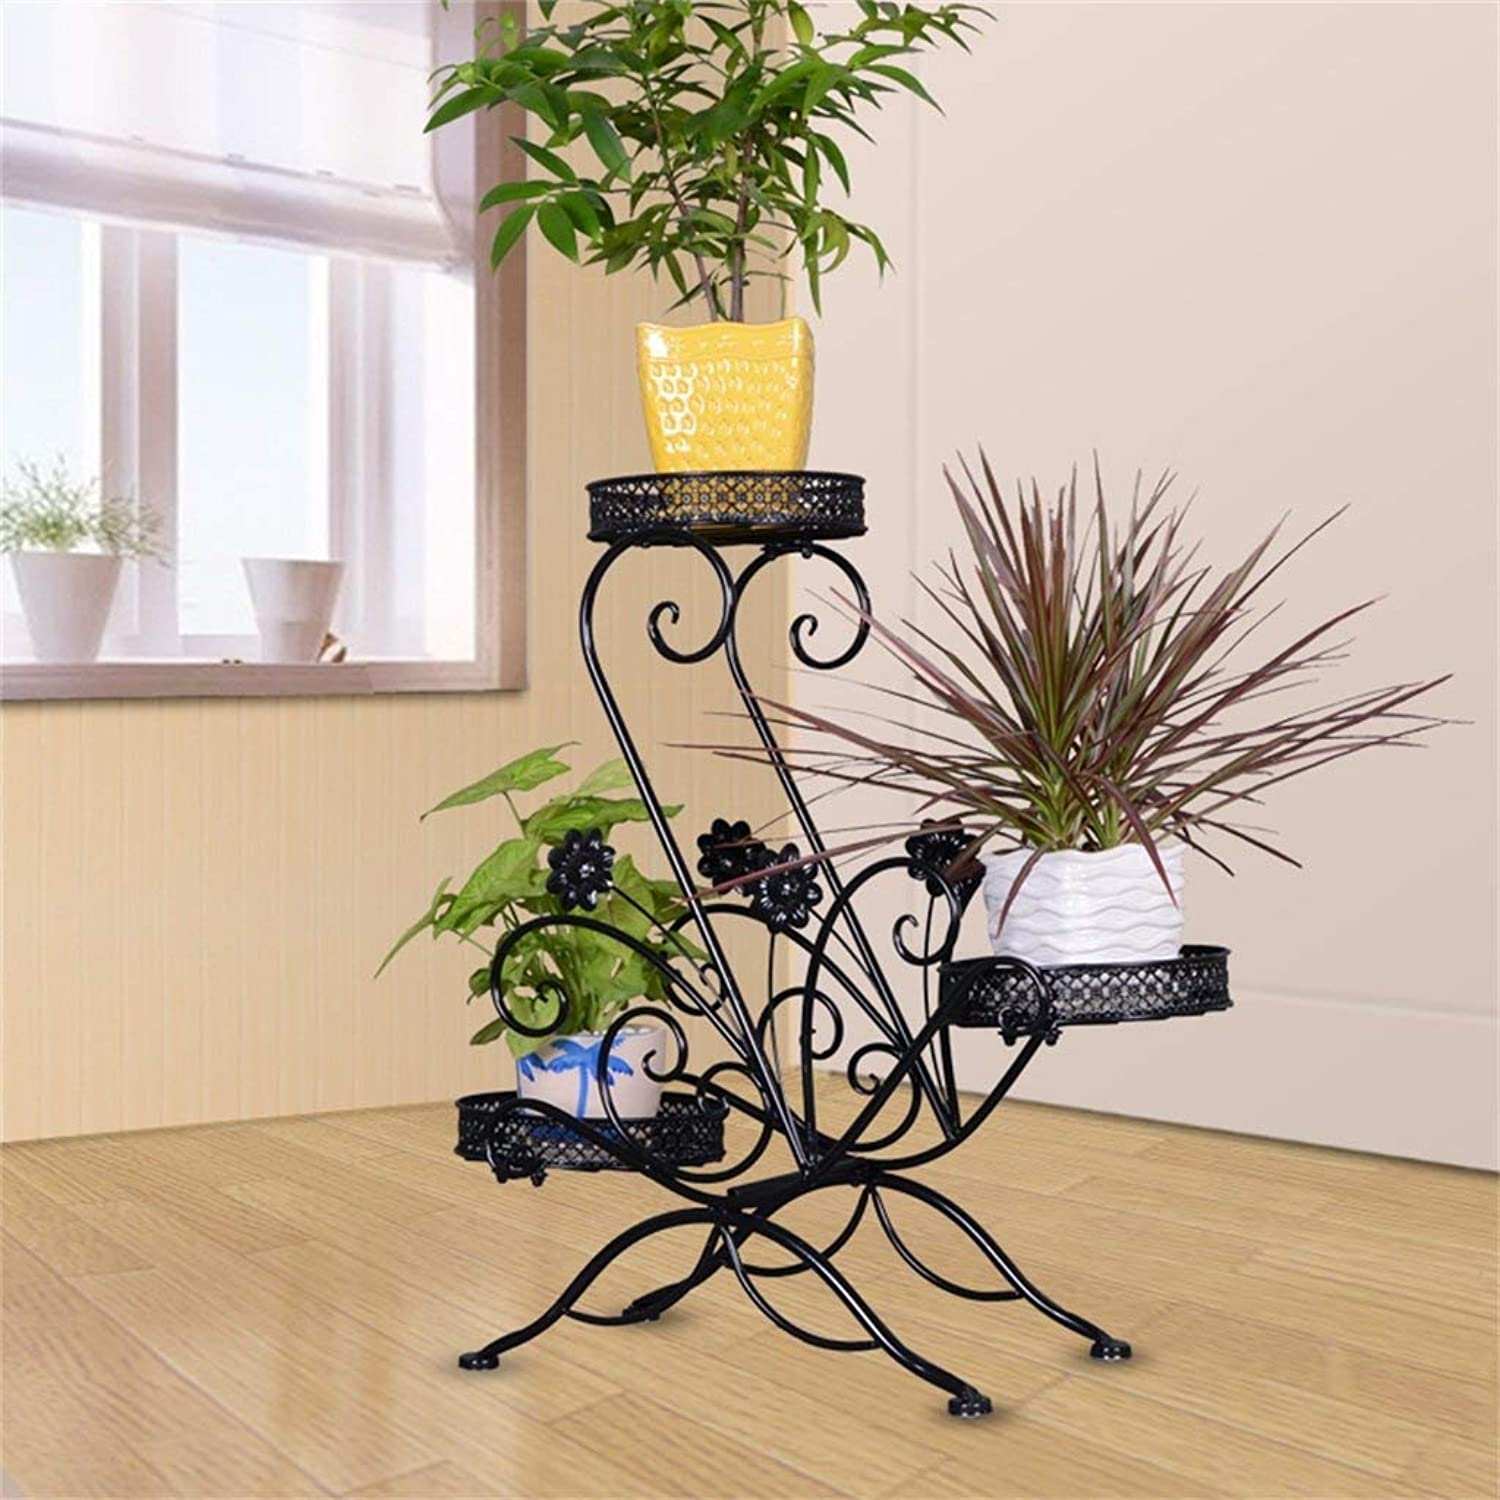 Gifts & Decor Plant Stand Shelf Outdoor Indoor Display Plant Stand Multi-Layer Plant Display Frame Garden Metal Shelf Indoor Outdoor Wrought Iron Craft Flower Shelf Layer Multifunctional Shelf